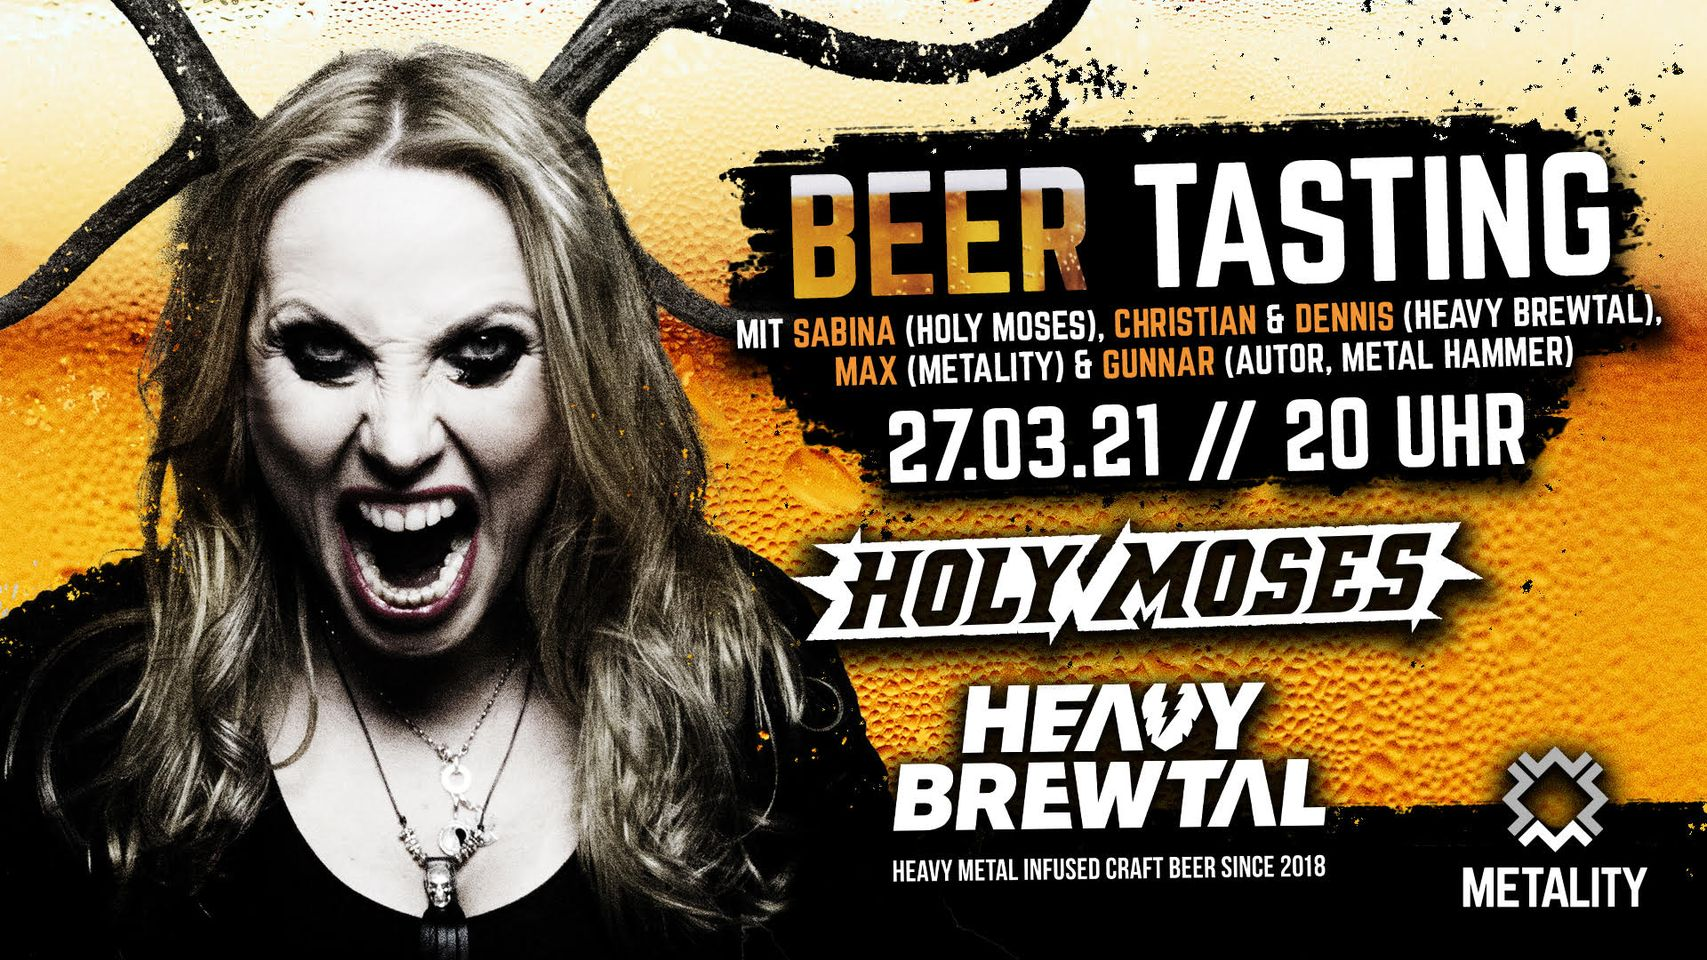 4. Metality Beer Tasting mit Heavy Brewtal & Special Guest